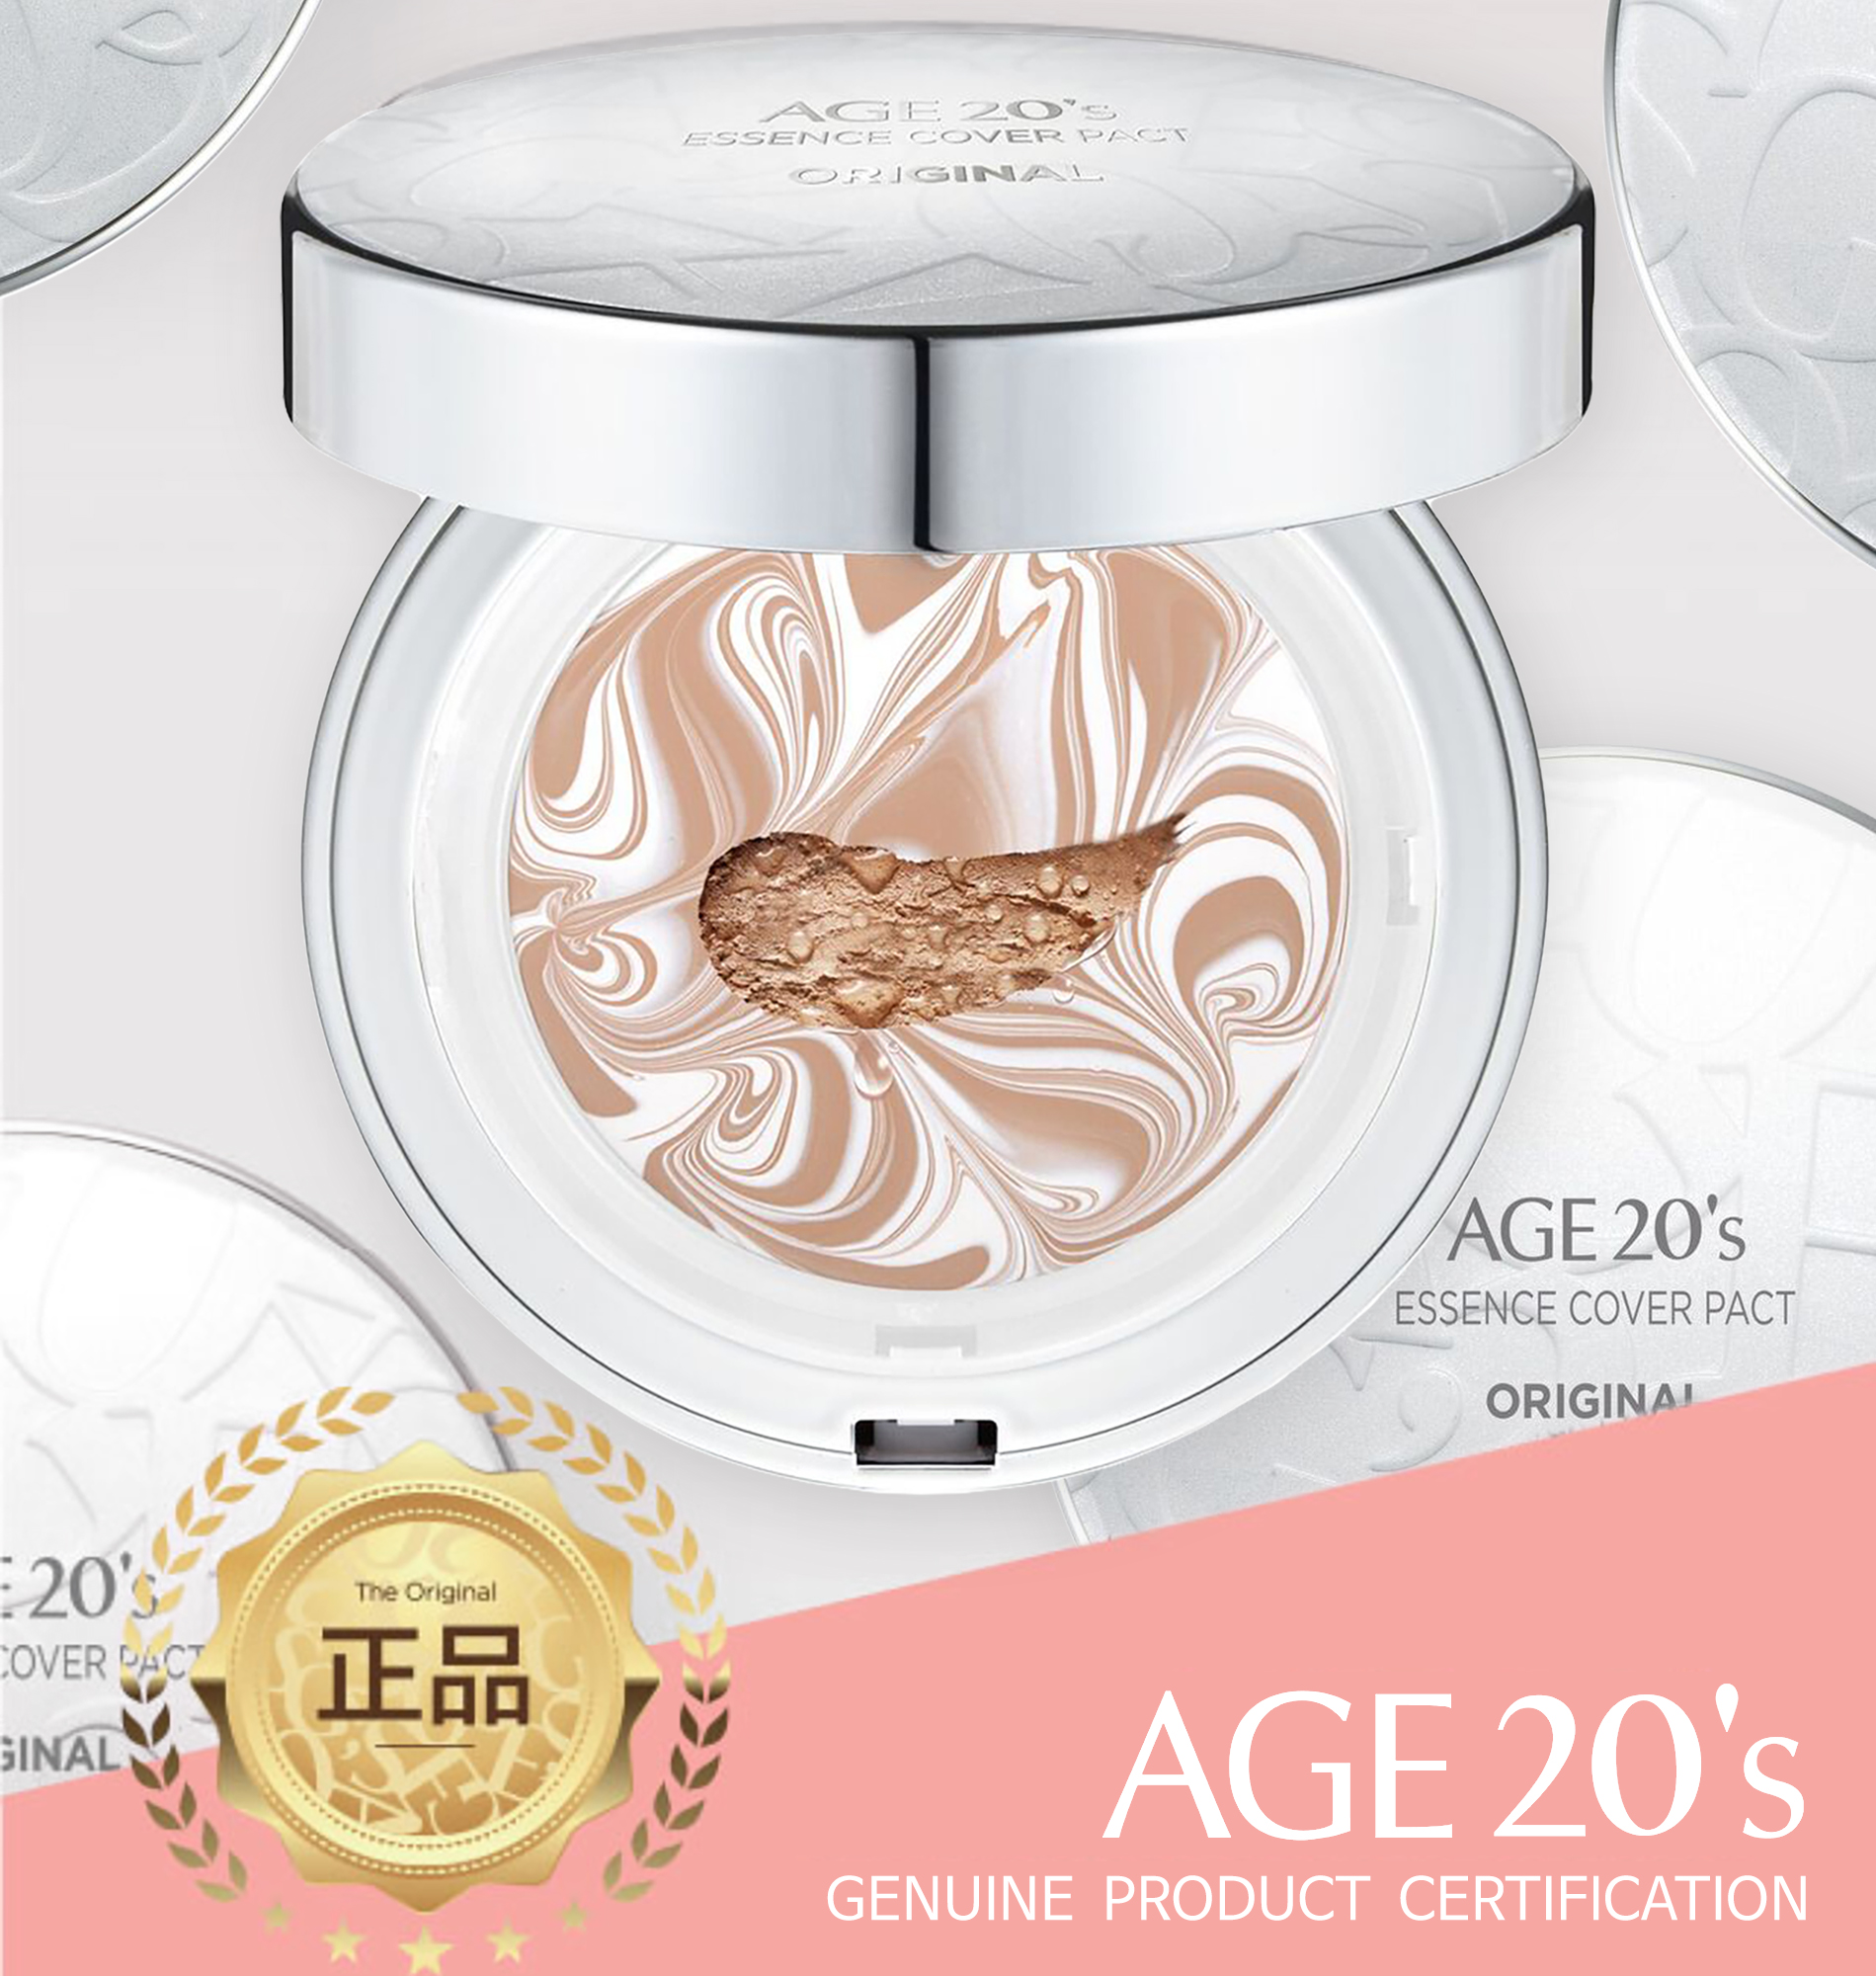 Age 20's Compact Foundation Premium Makeup, + 1 Extra Refill - Essence Cover Pact SPF50+ (Made in Korea) - White / Natural Beige (Color 23)